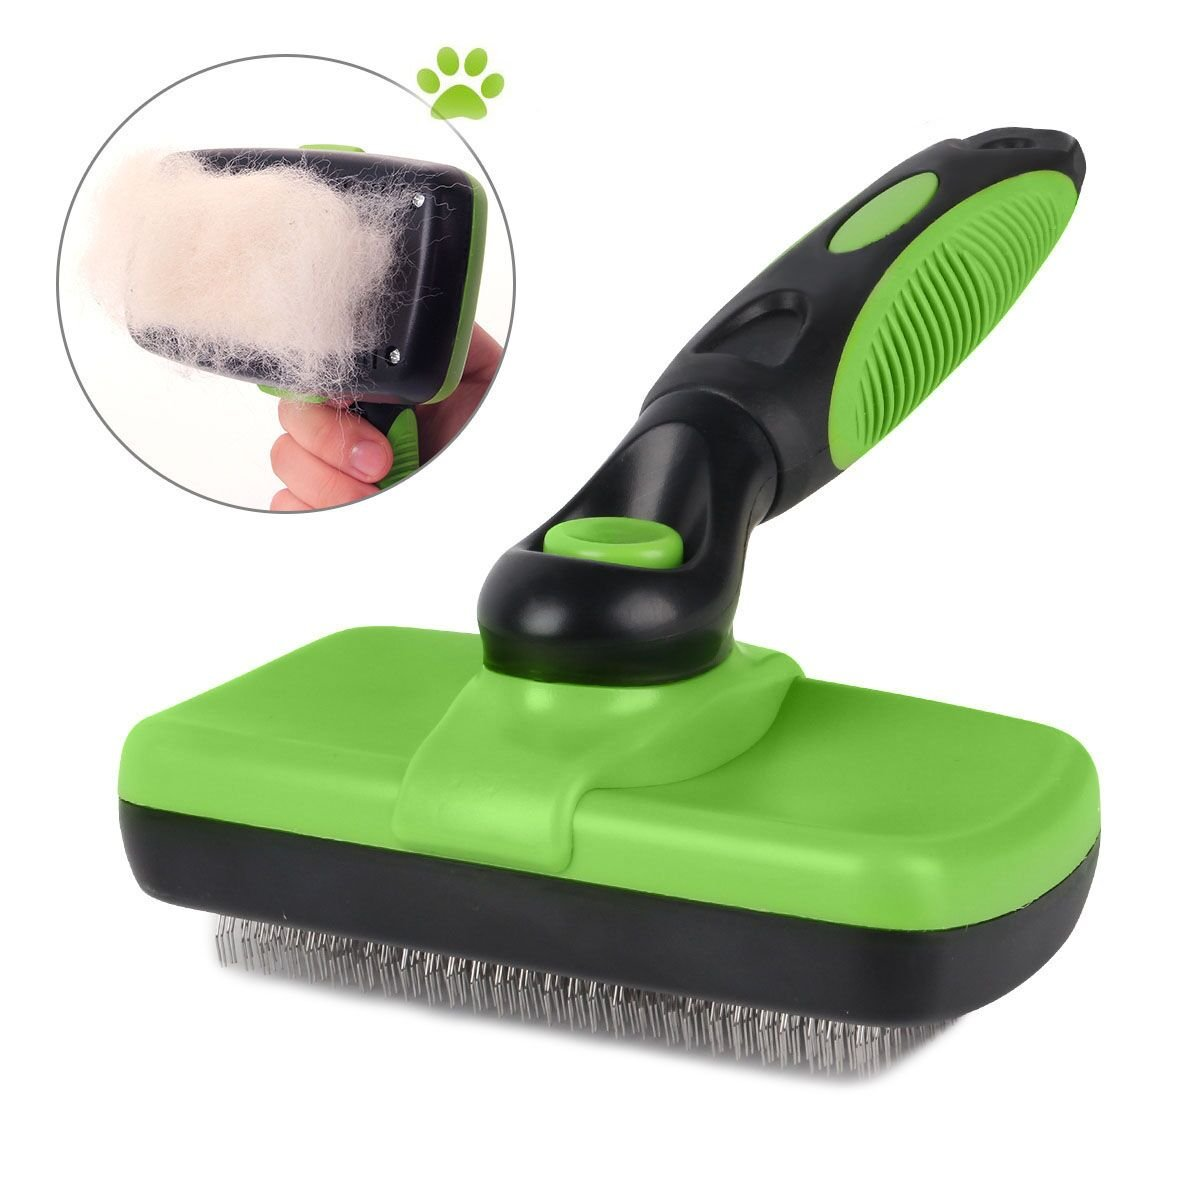 Pet Grooming Brush-Self Cleaning Slicker Brushes for Dogs and Cats Long & Thick Hair Best Pet Shedding Tool for Grooming Loose Undercoat,Tangled Knots & Matted Fur